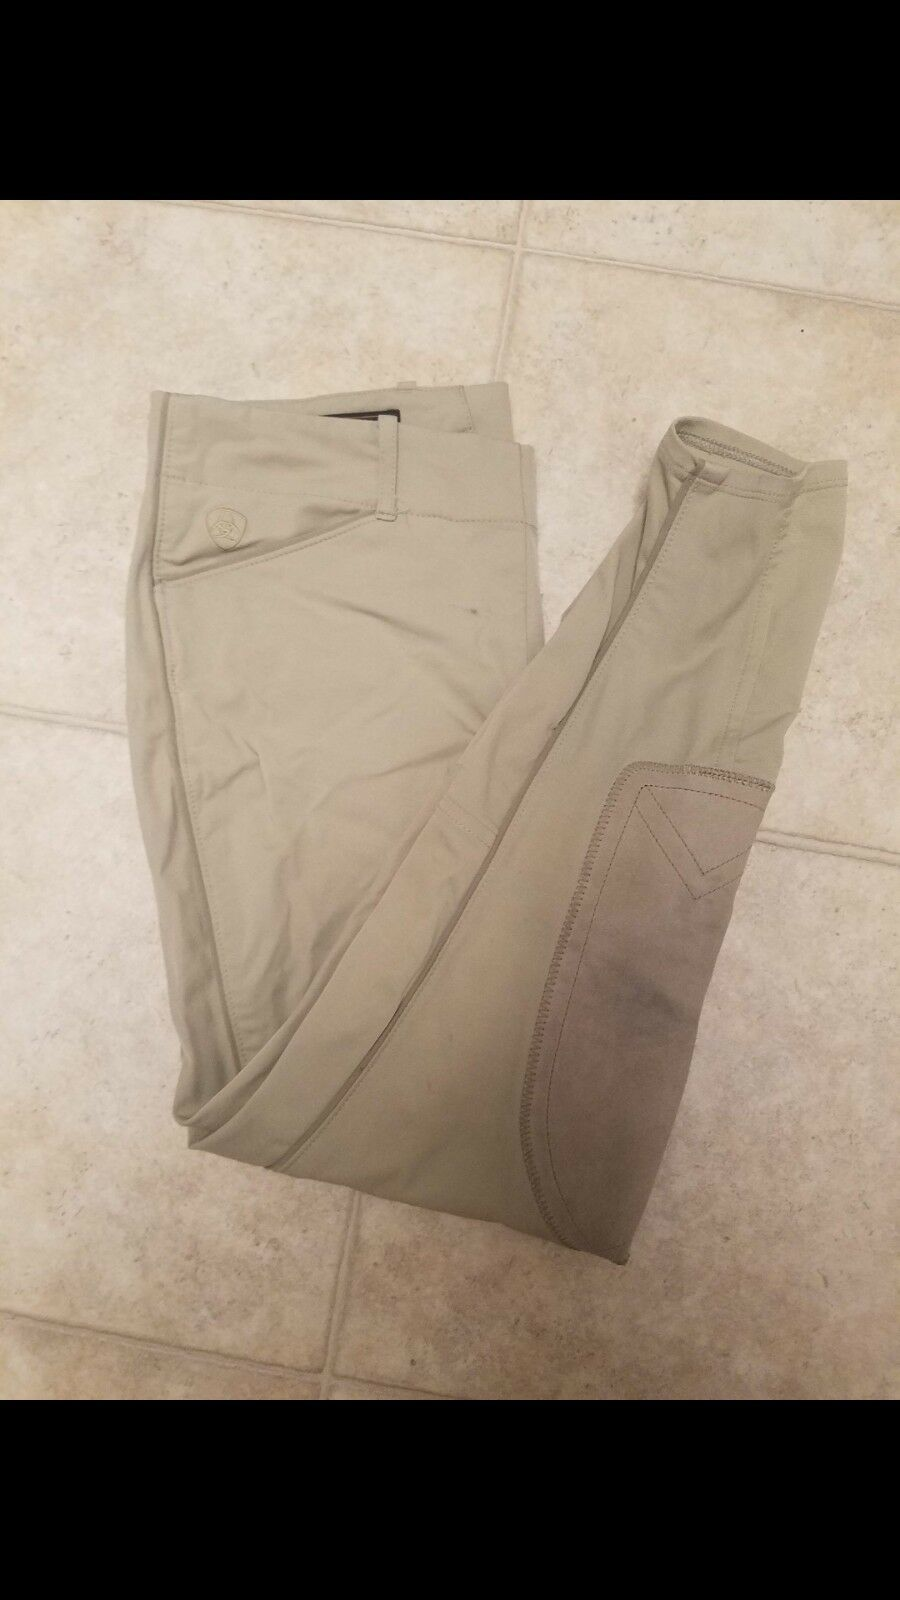 Ariat Pro Circut Breeches size 28